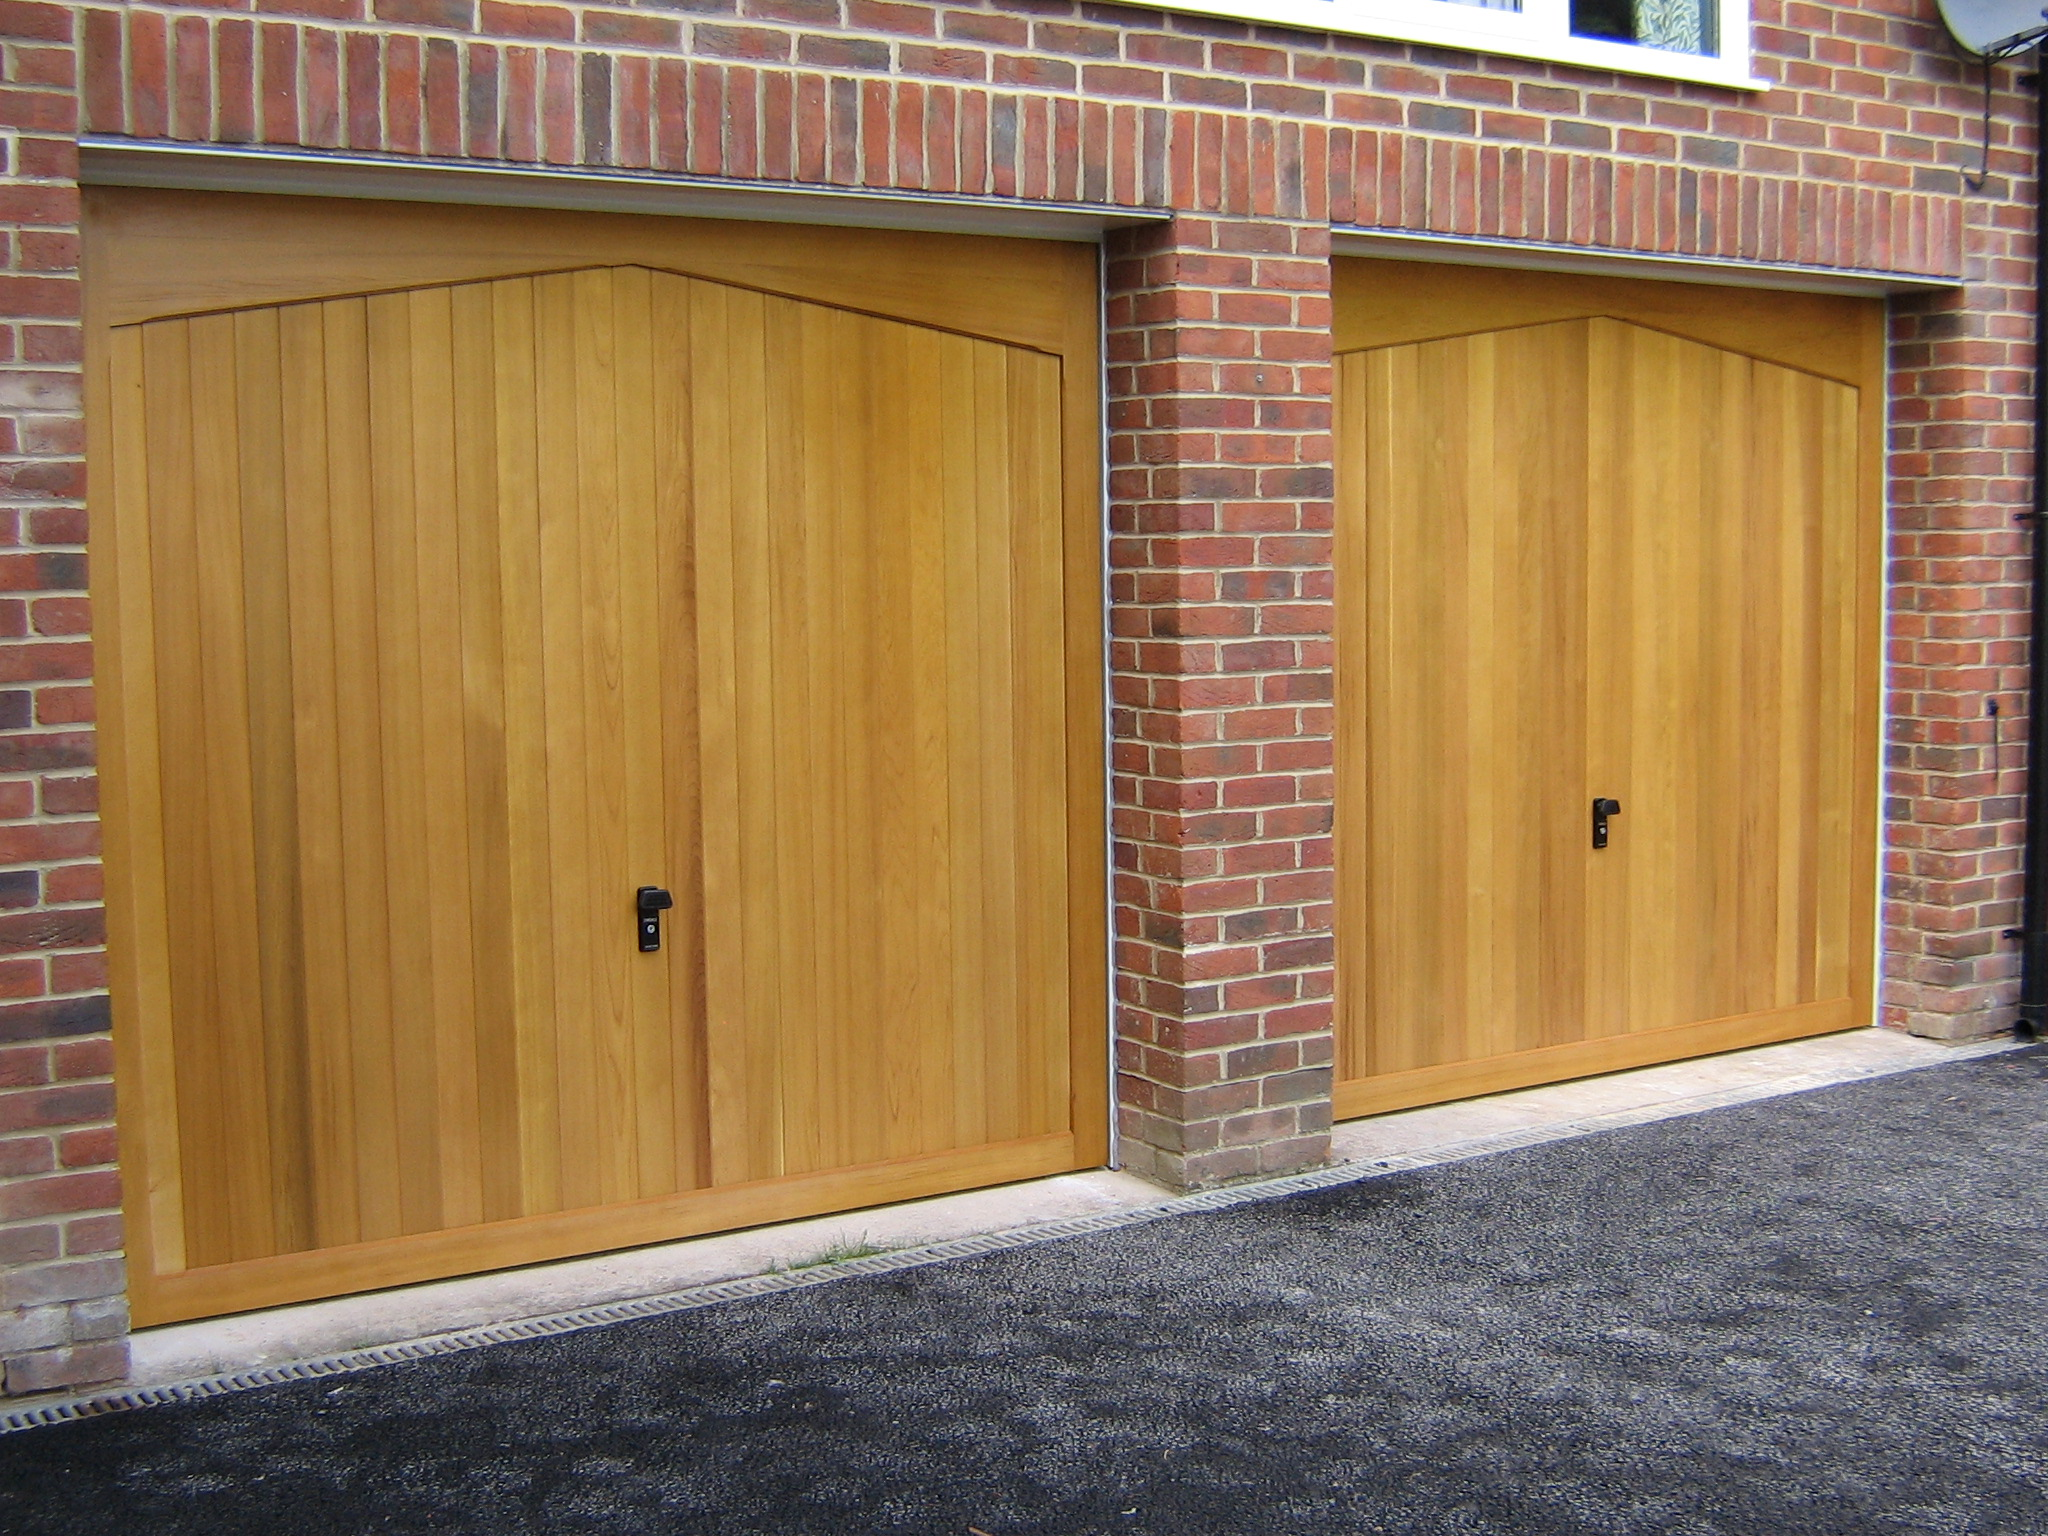 1536 #967035 New Garage Doors Andover Garage Doors Hampshire wallpaper Doors And Garage Doors 37152048